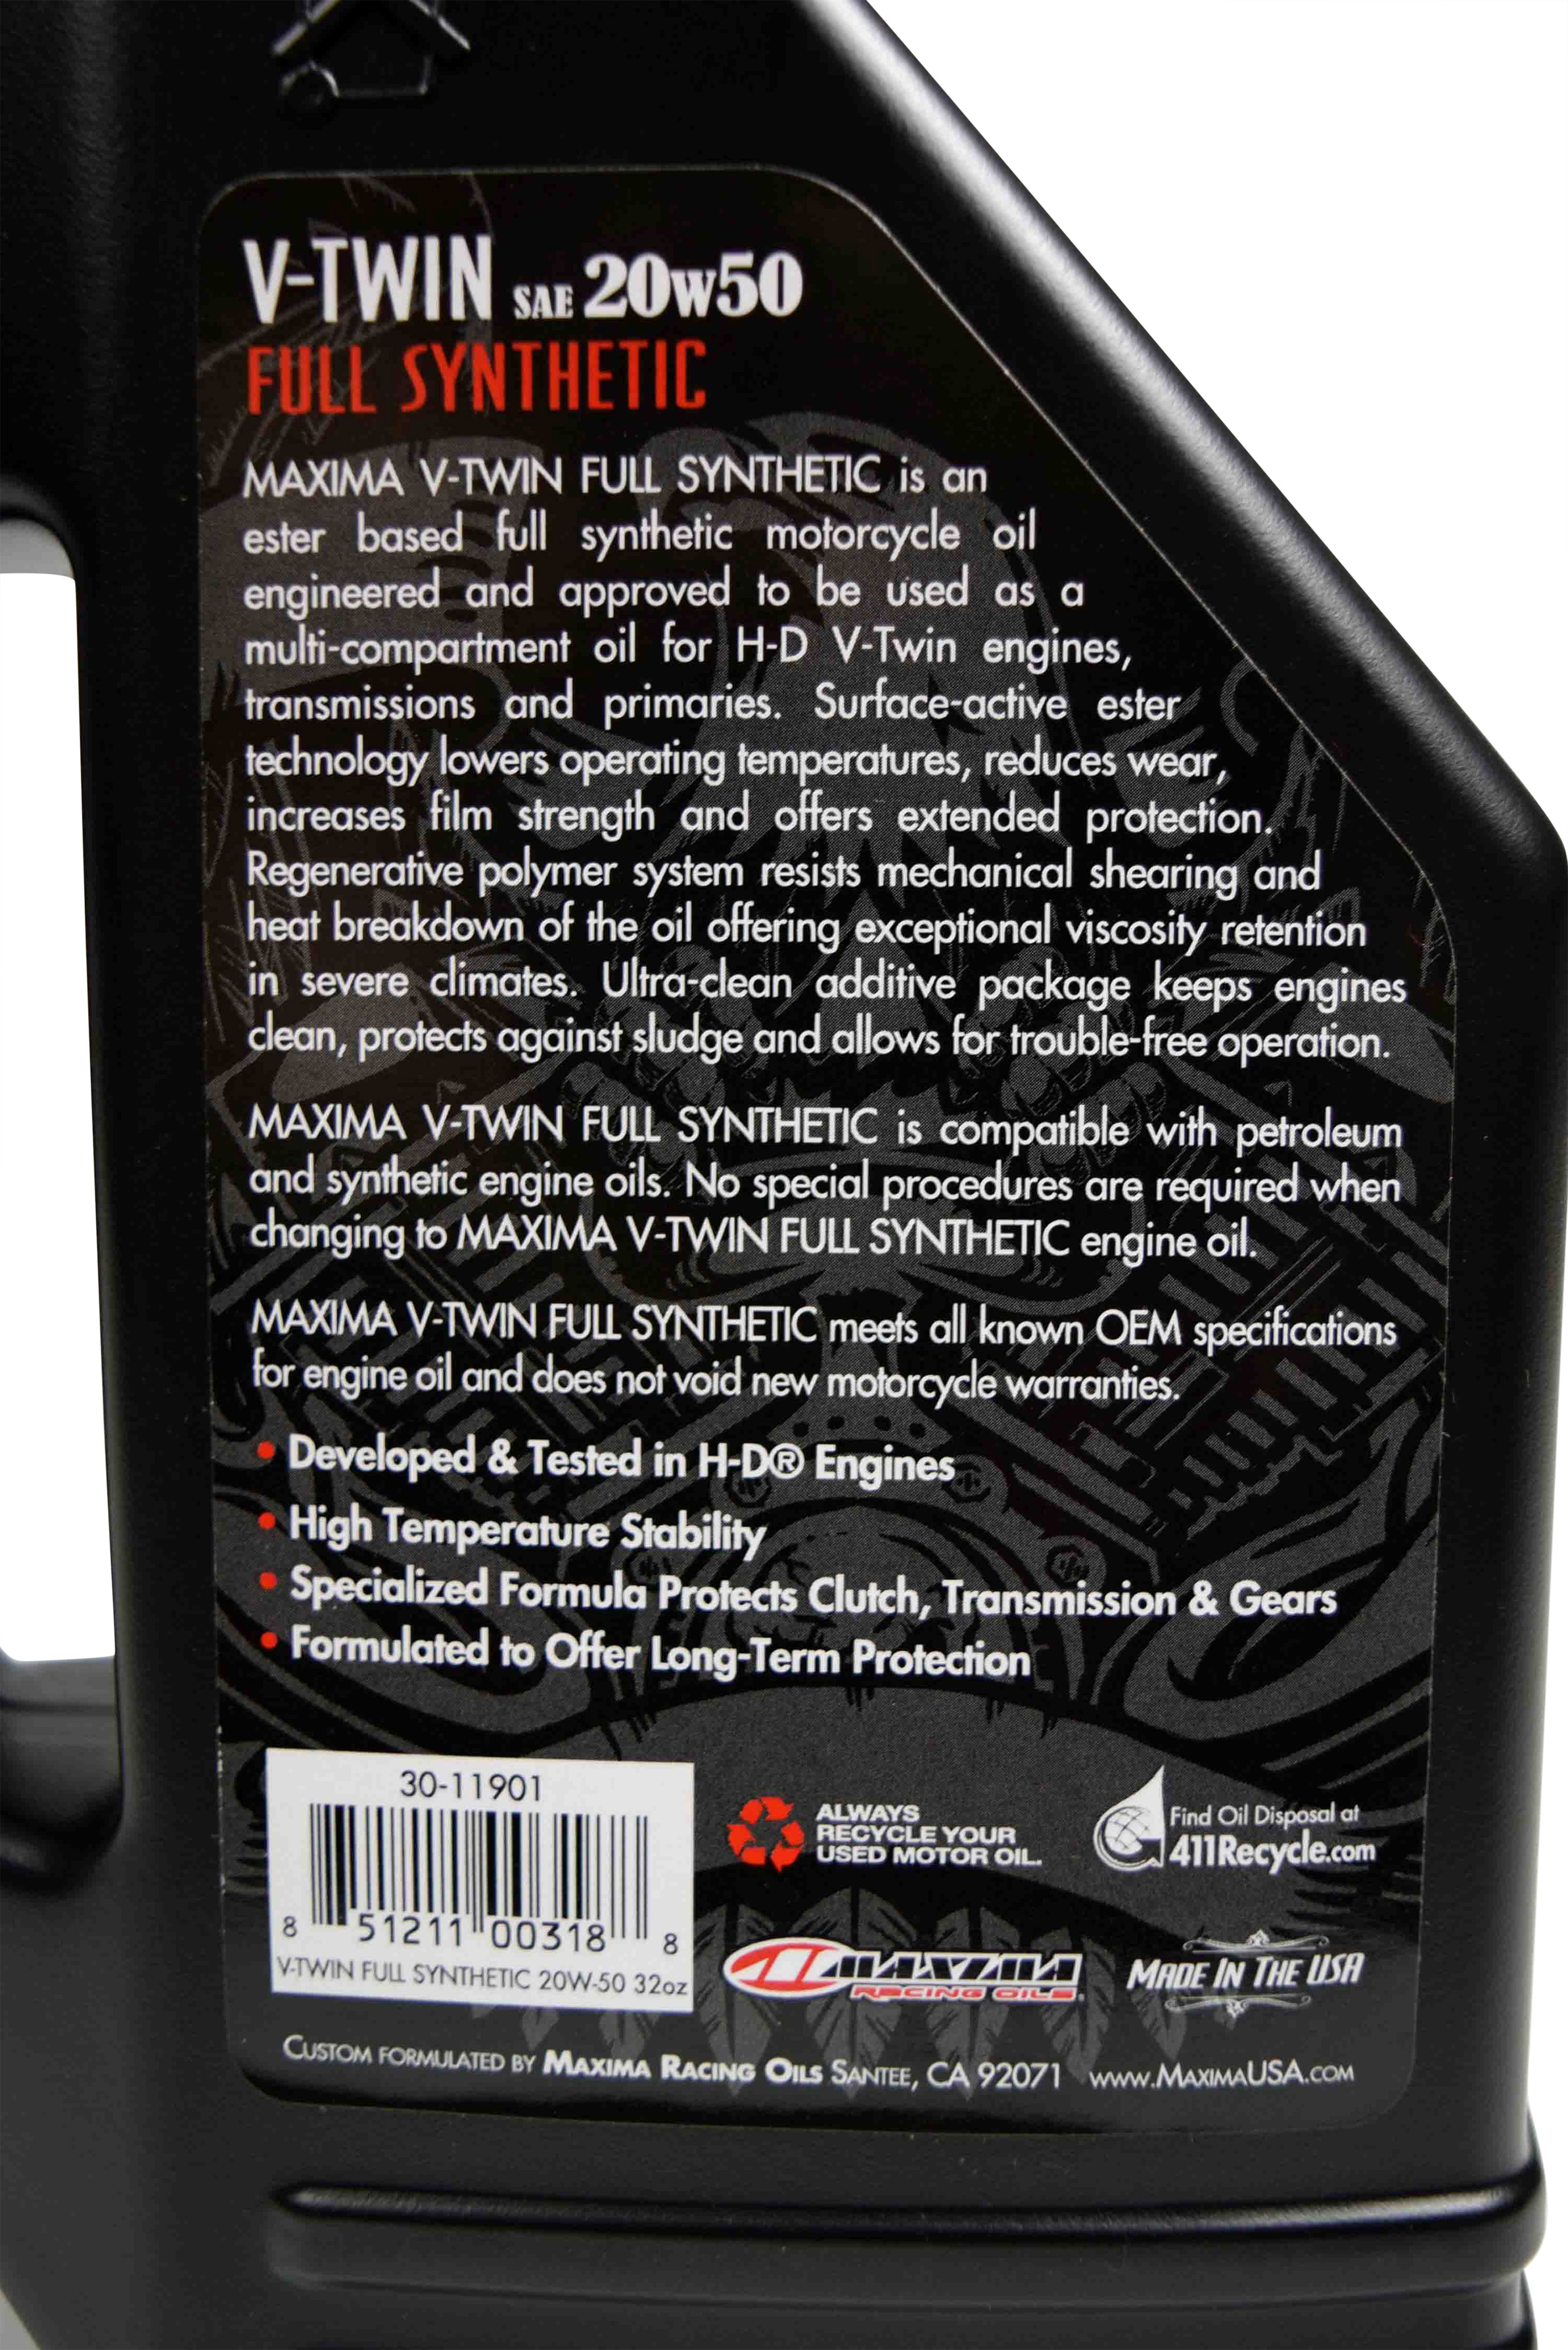 Maxima-Racing-Oils-30-11901-20w50-V-Twin-Full-Synthetic-Engine-Oil-32-fl.-oz.-image-5